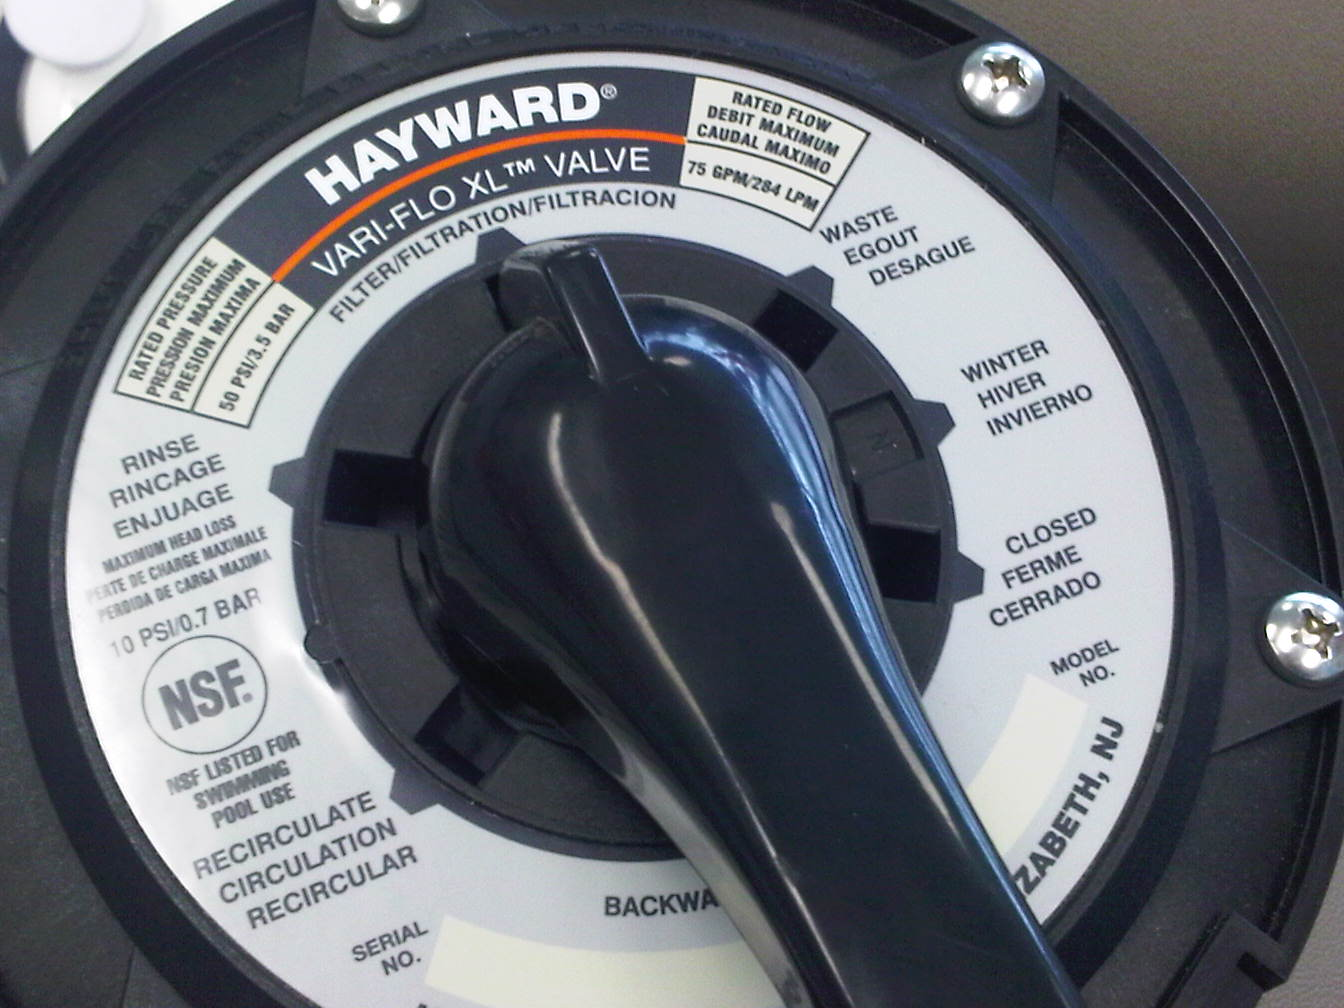 How do you use a Hayward sand filter?